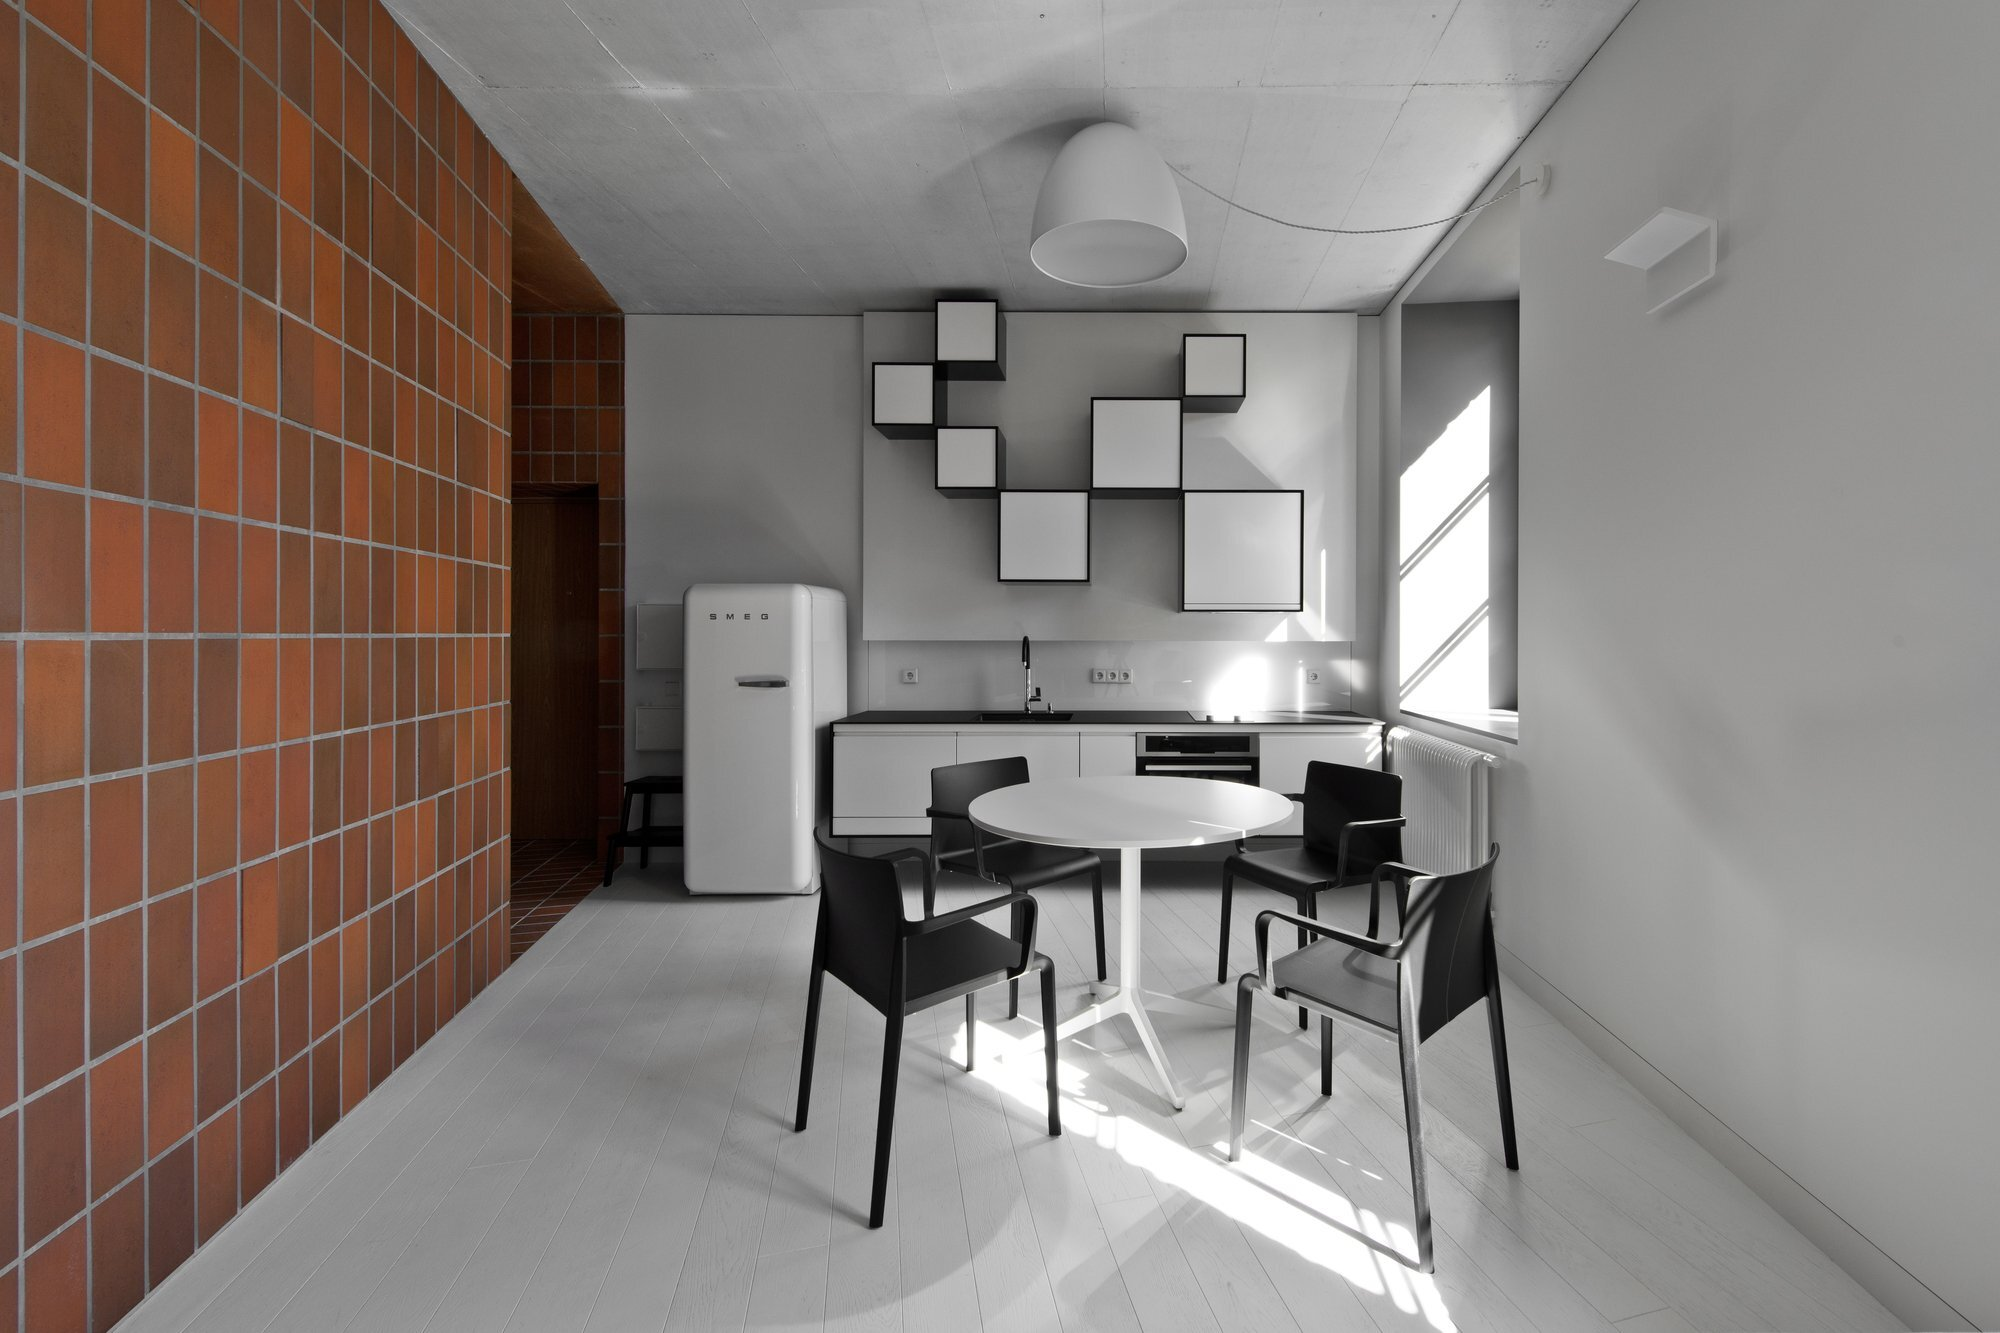 Bazillion - YCL Studio - Lithuania - Kitchen and Dining Area - Humble Homes